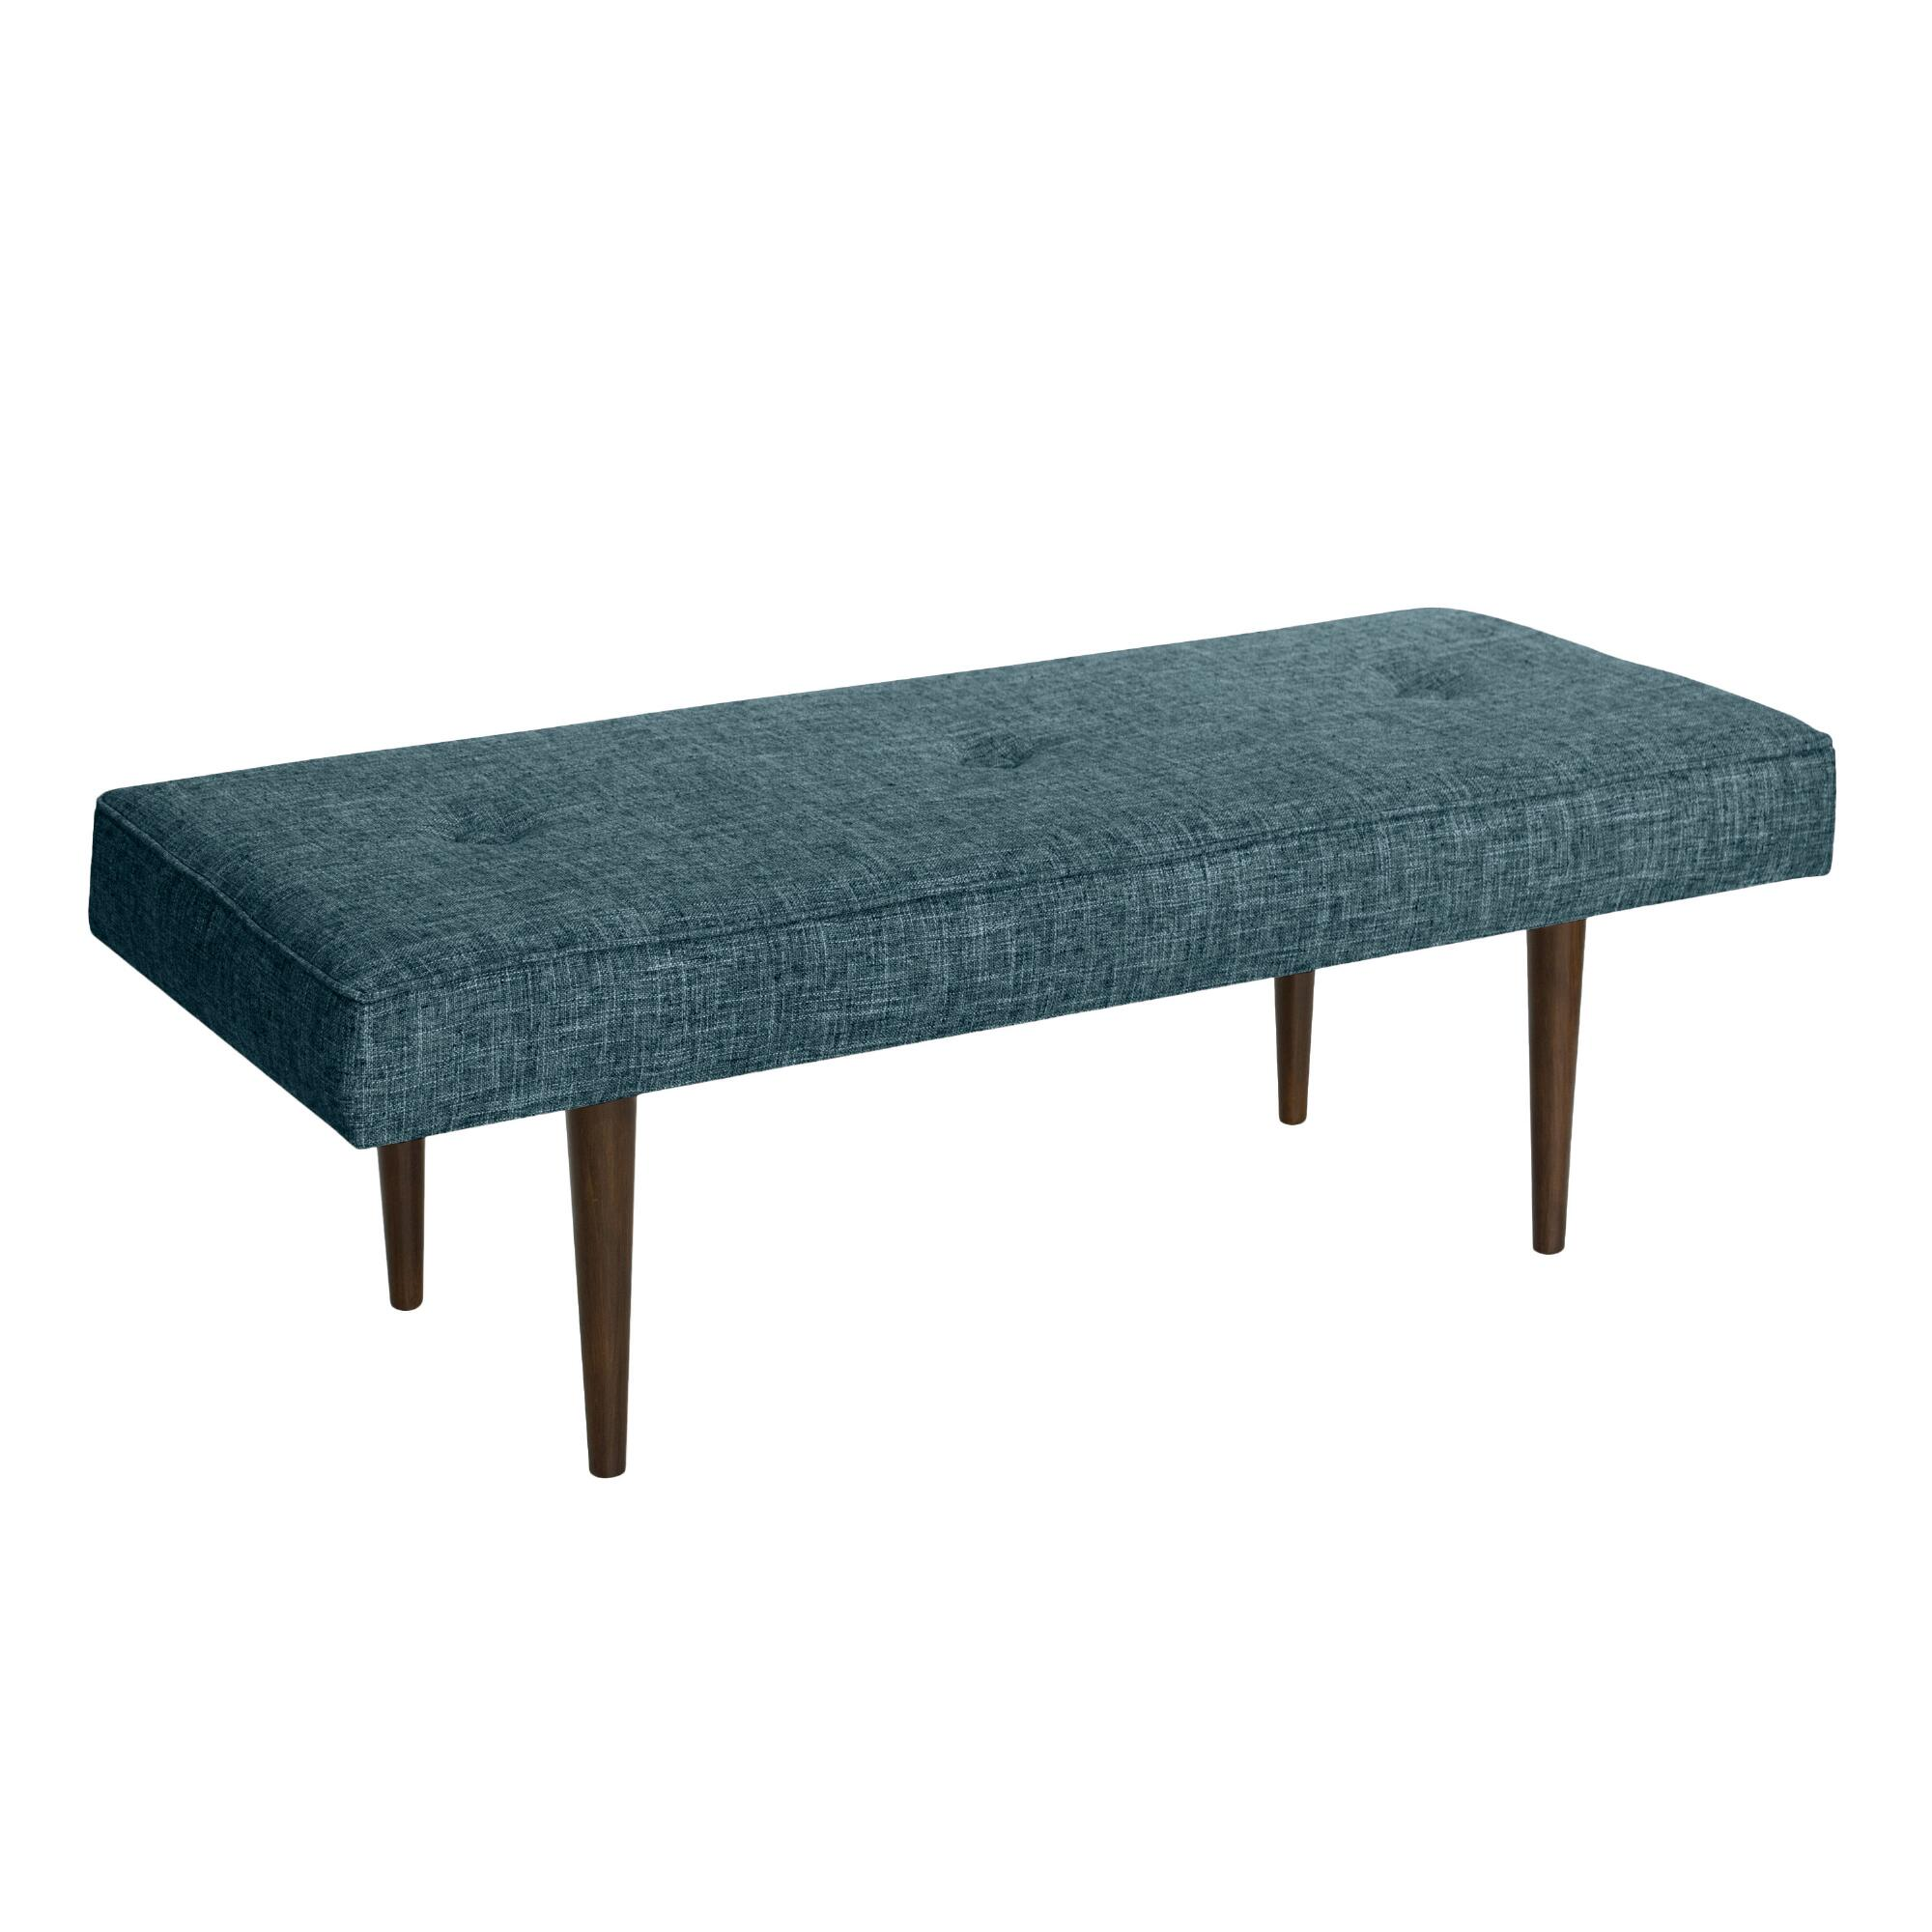 Bram upholstered bench world market Padded benches